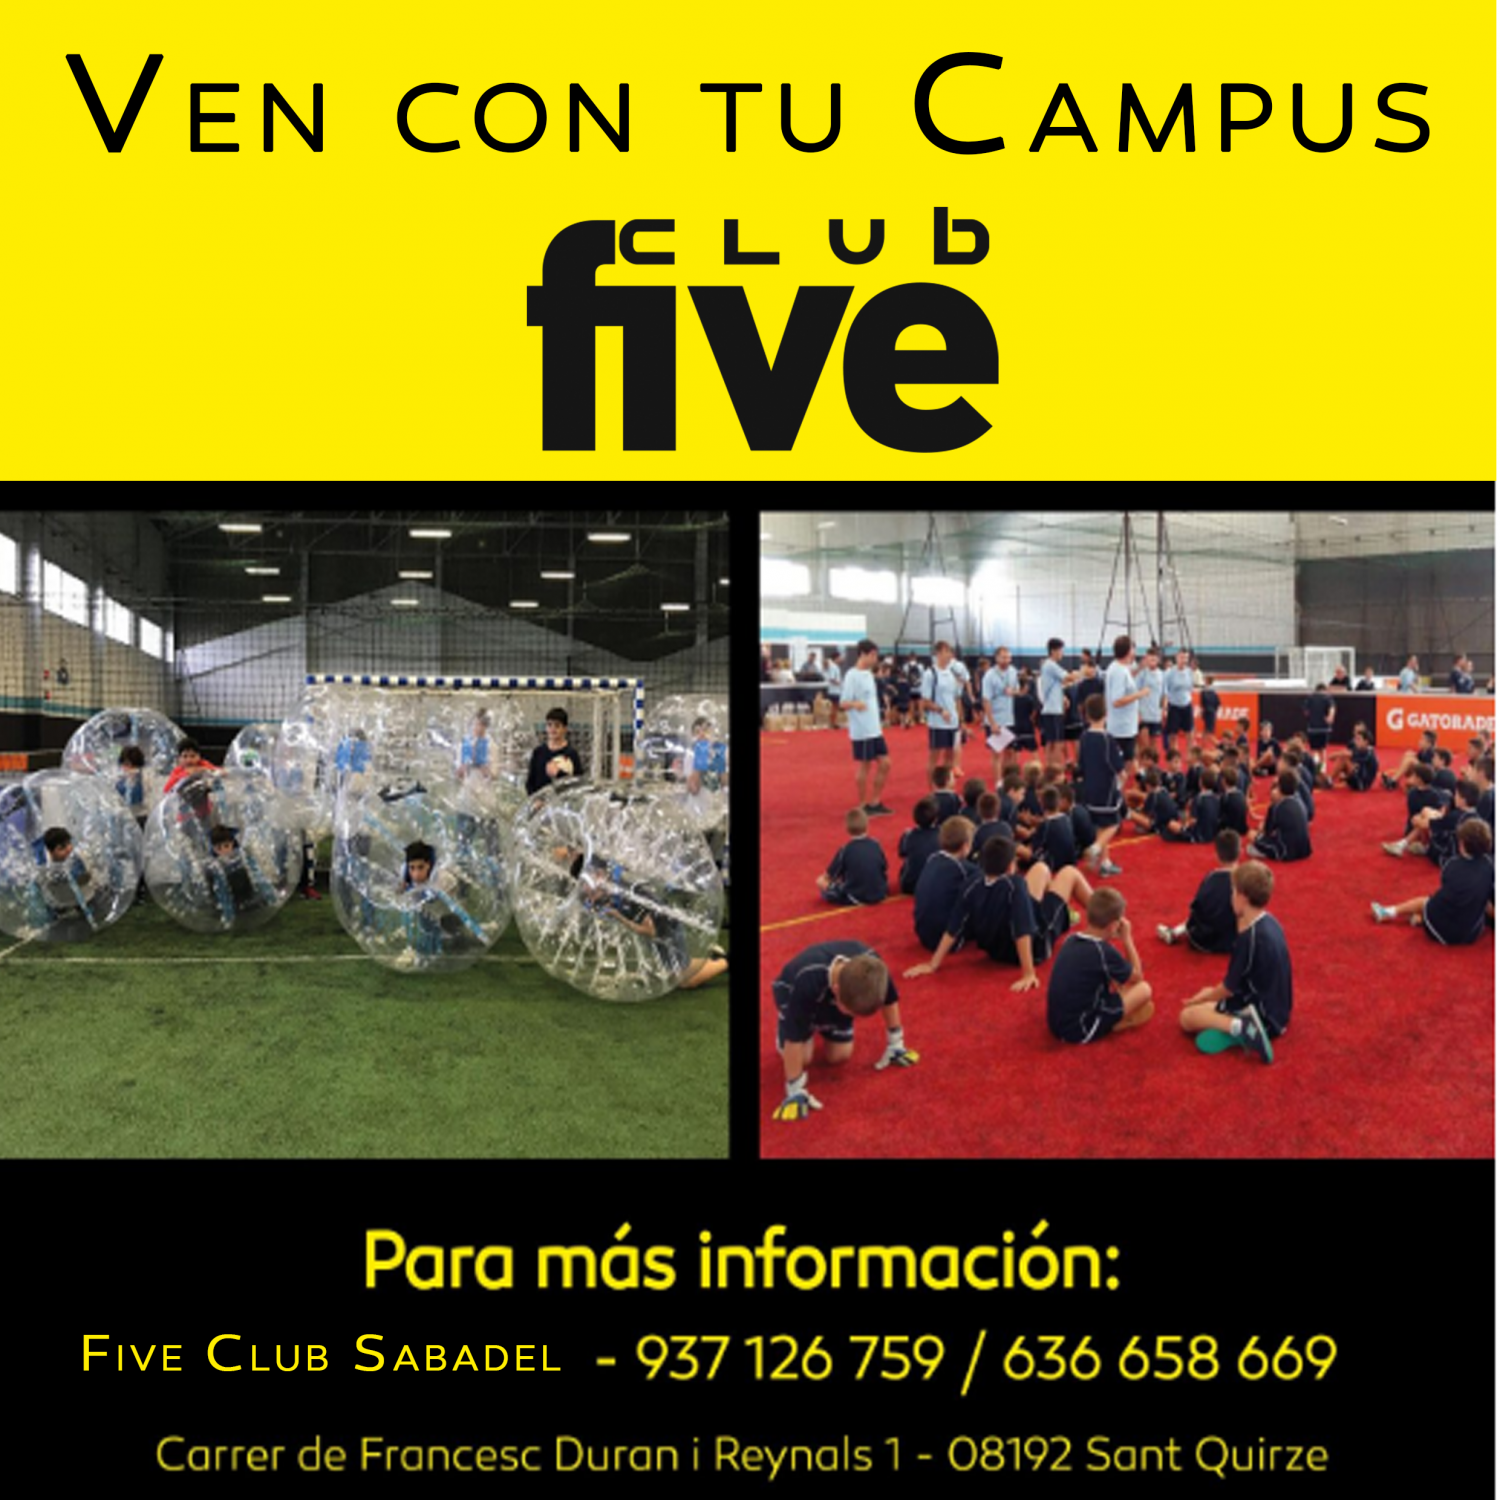 campus Five Club